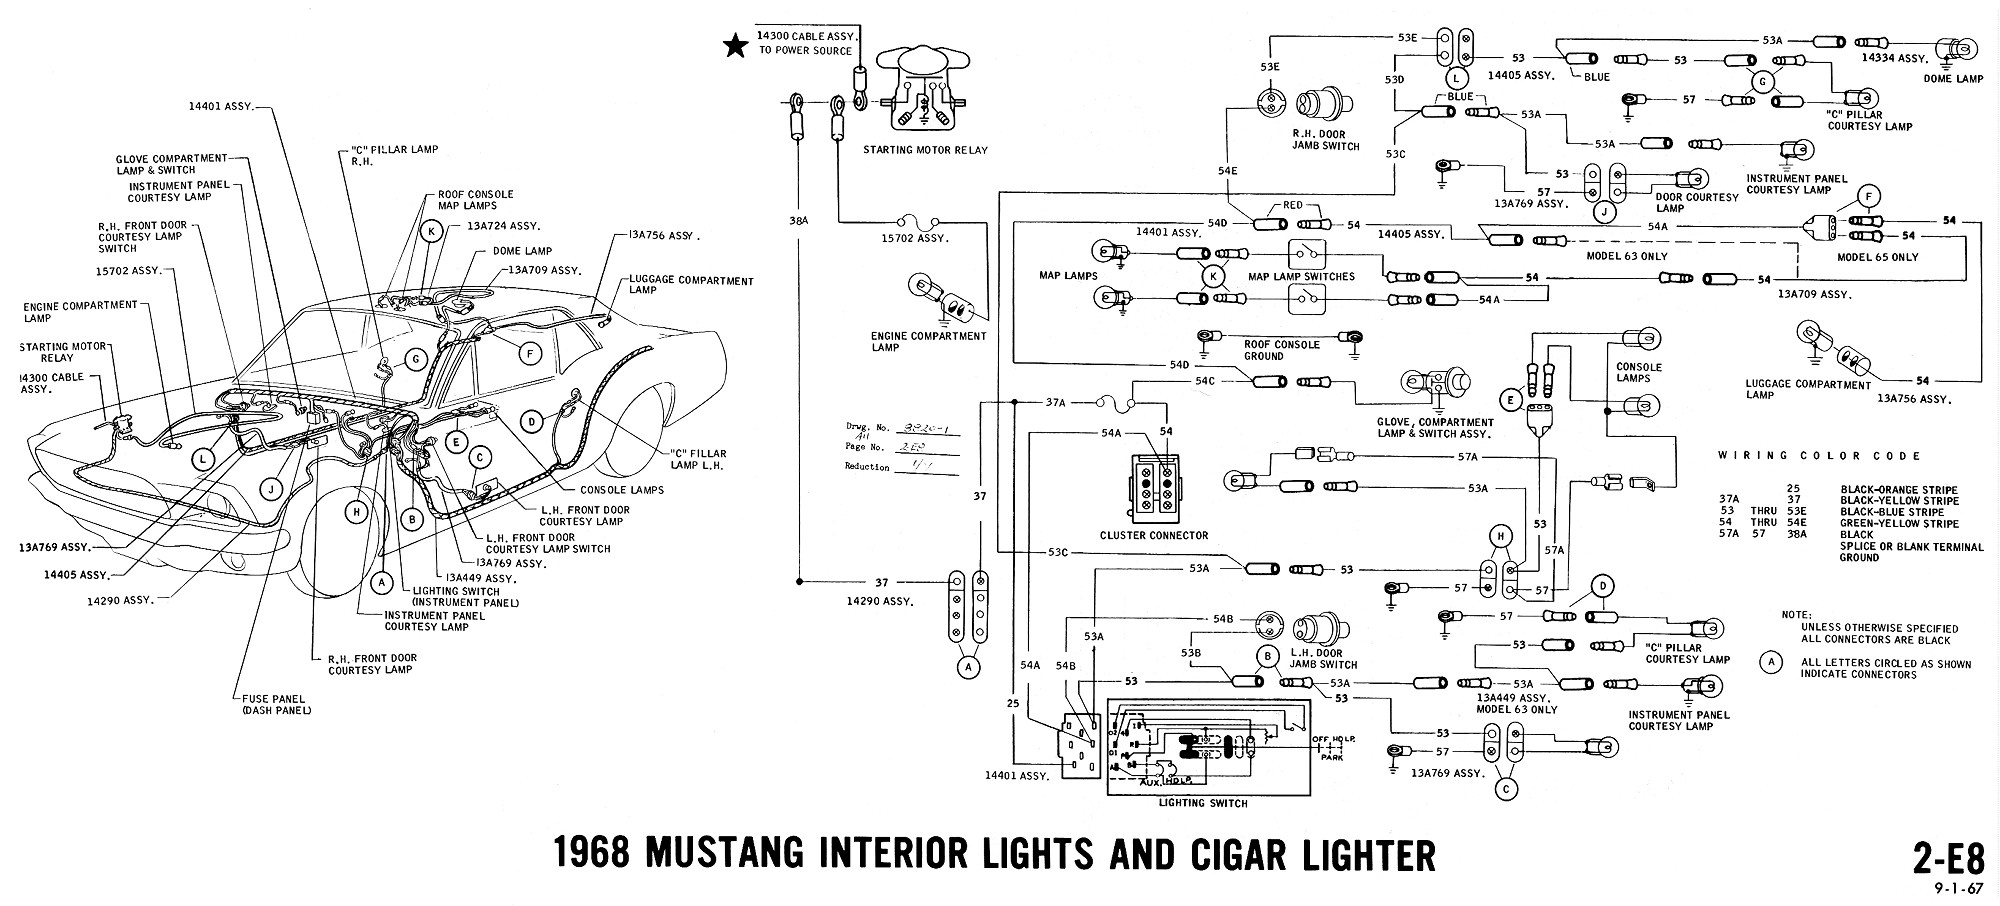 Wiring An Schematic Manual Guide Diagram Electrical Drawing Software 1968 Mustang Diagrams And Vacuum Schematics Average Joe Restoration For Nest Thermostat